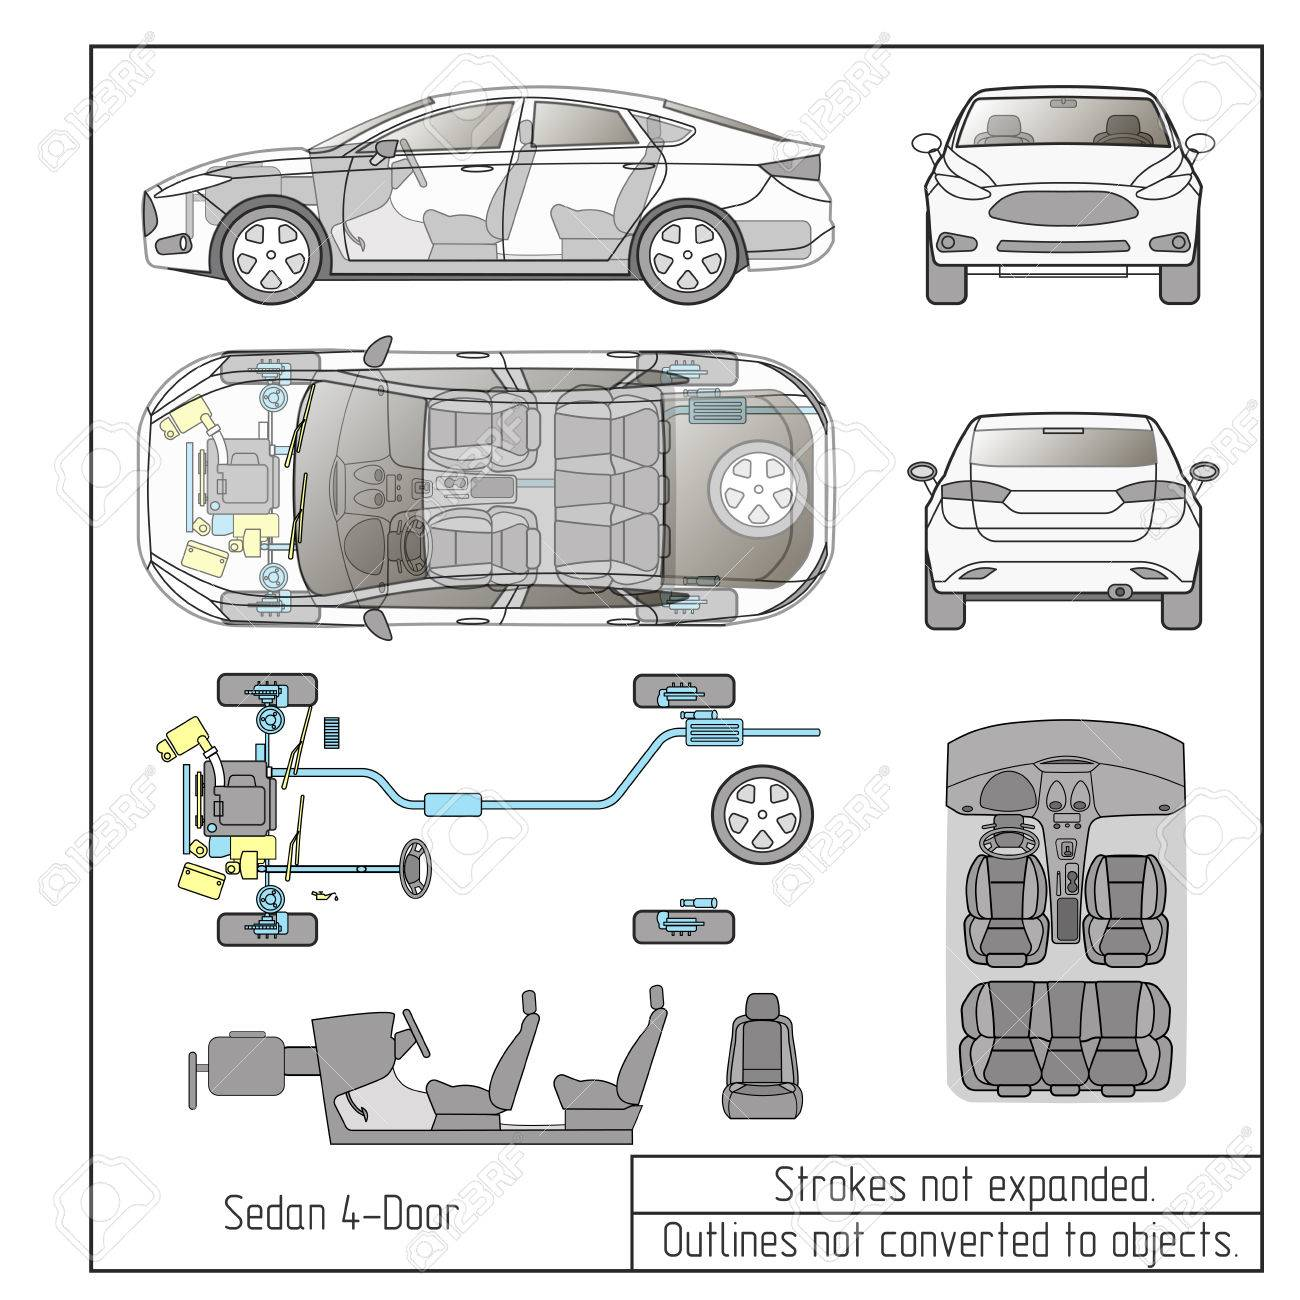 car sedan parts seats drawing outline strokes not expanded - 68629772